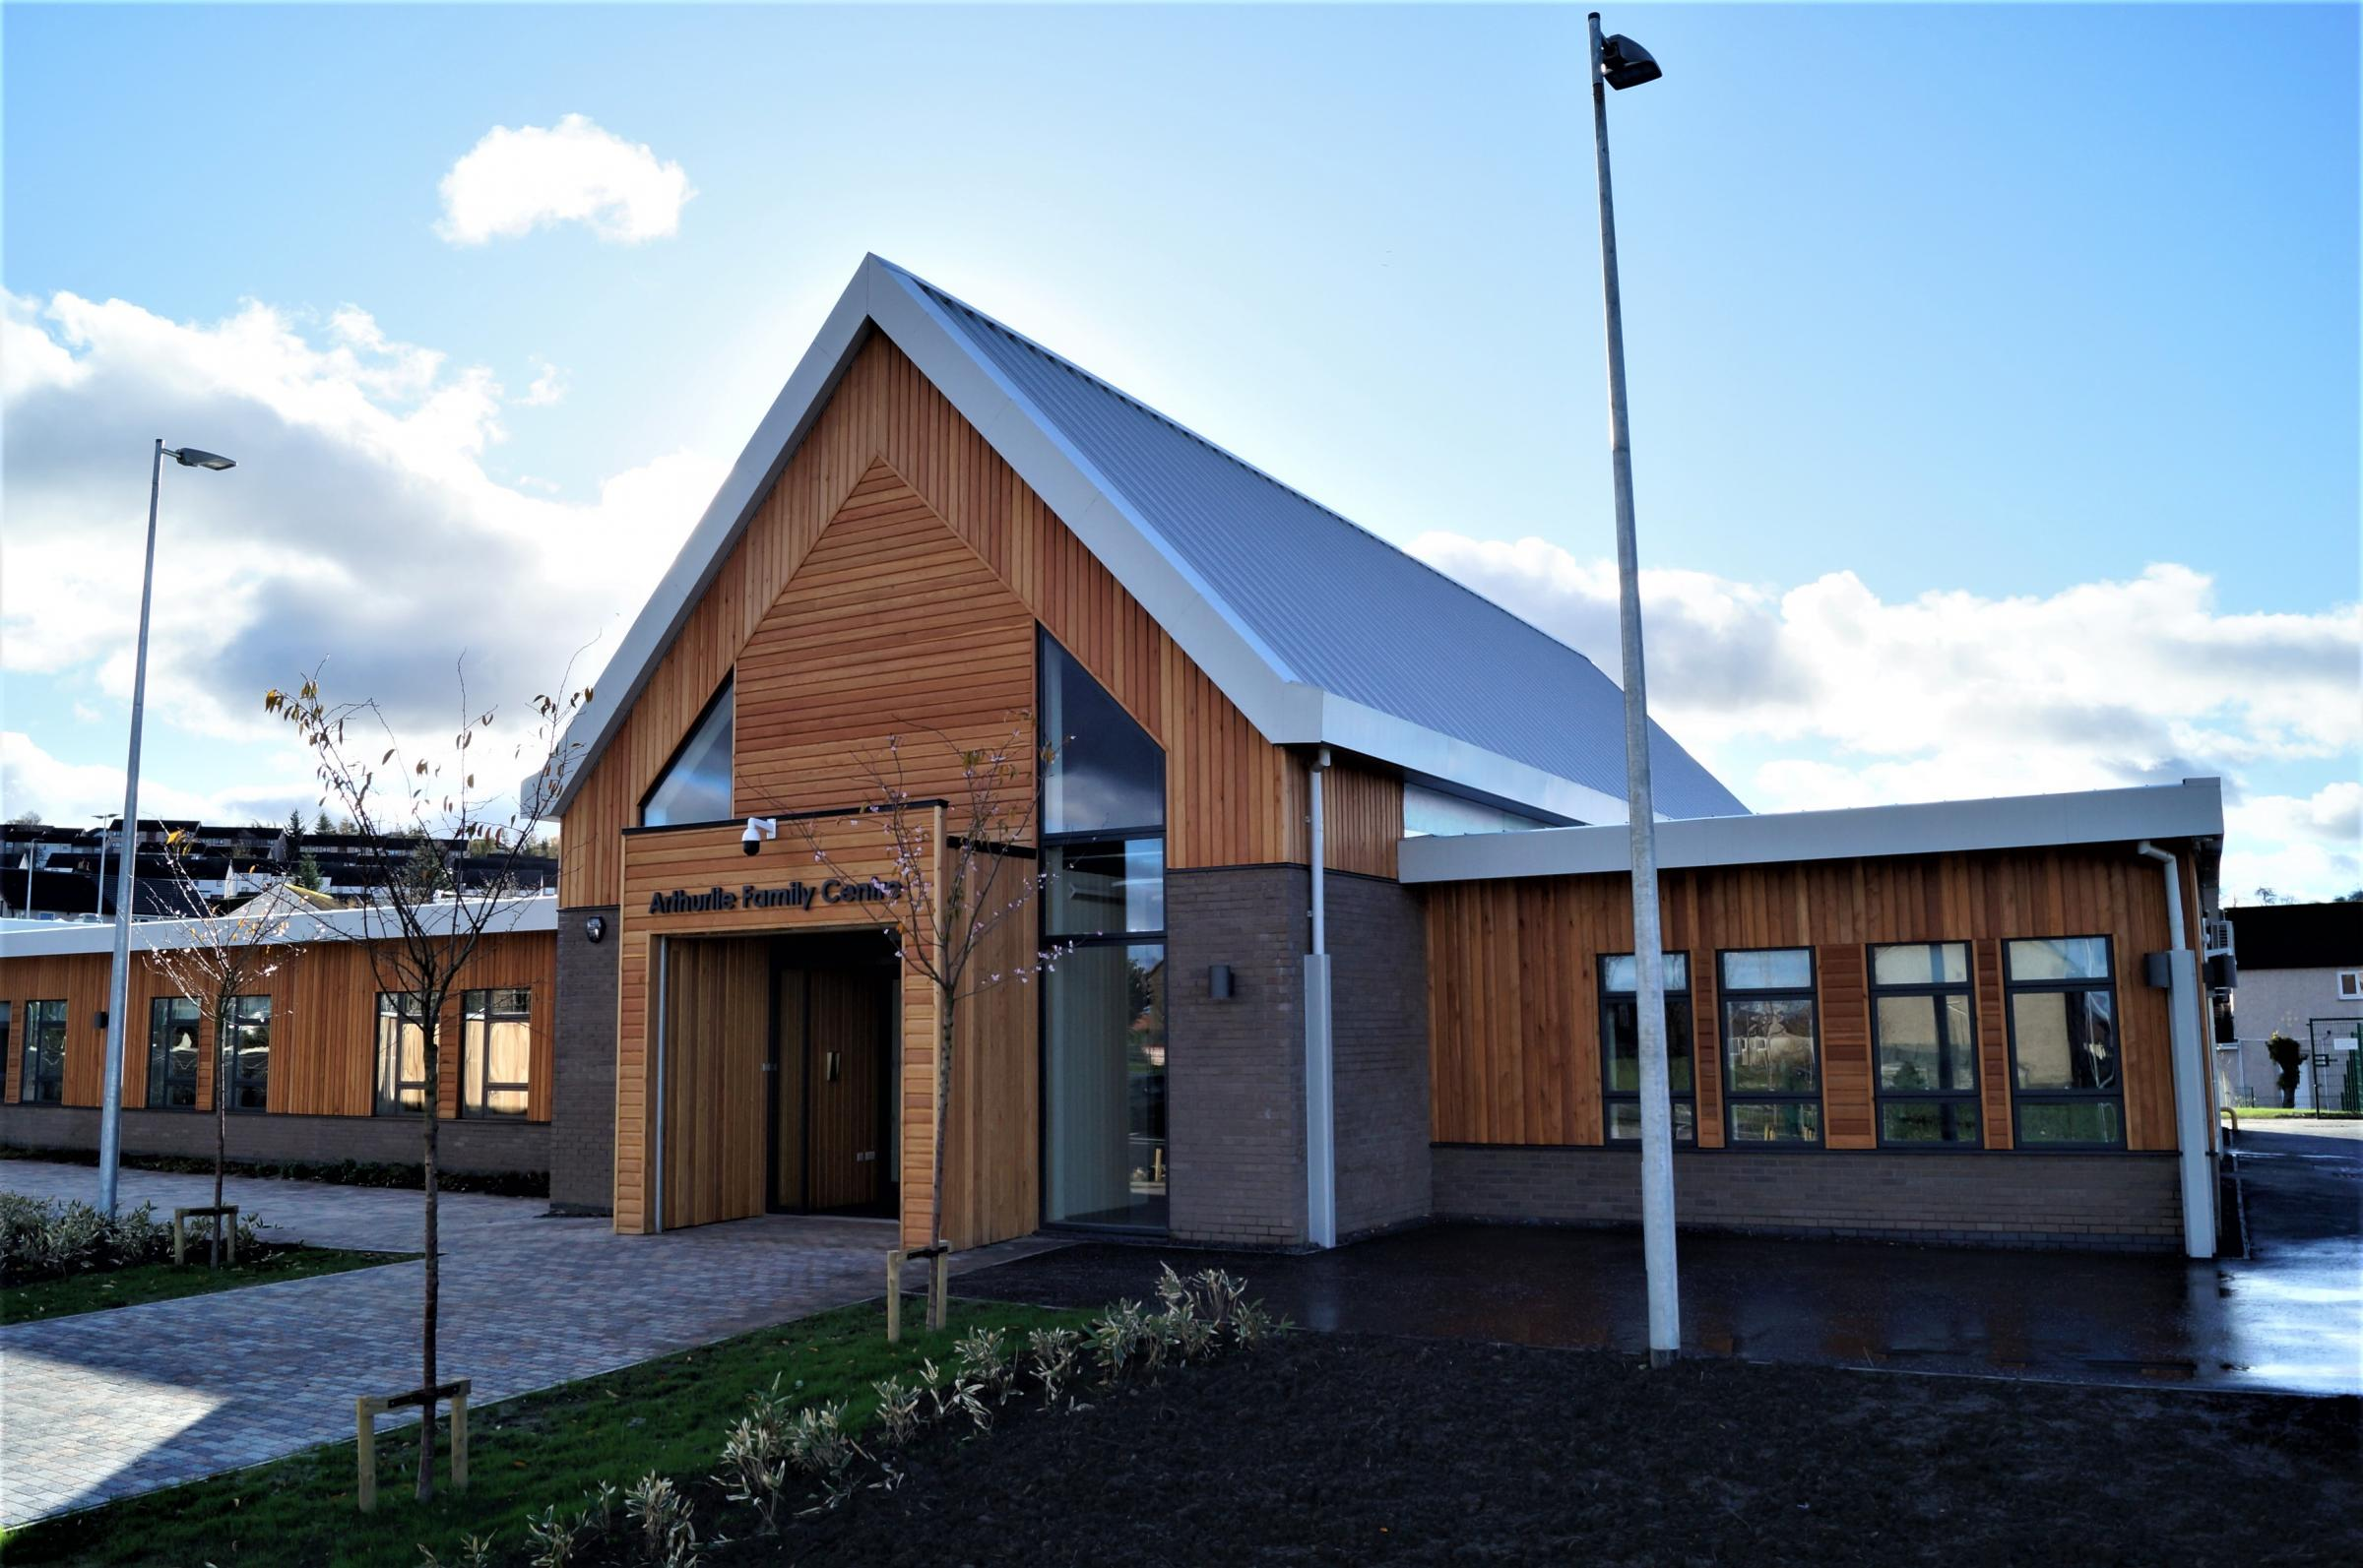 The official opening of the new Arthurlie Family Centre will take place next week